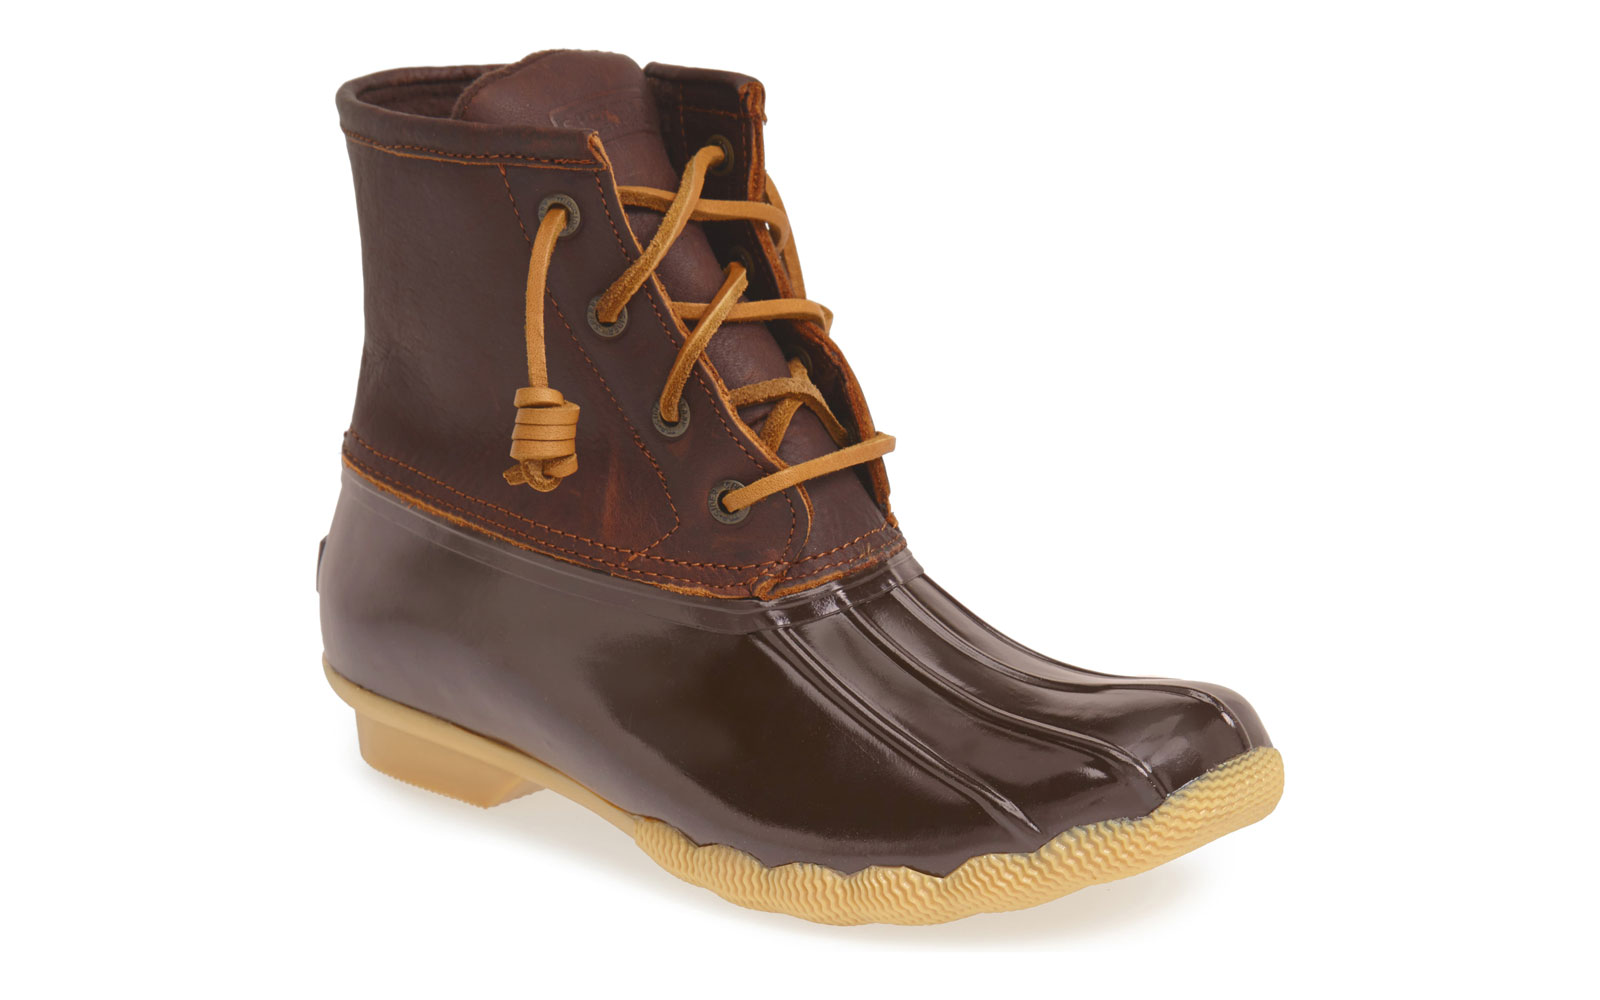 Women's brown leather rain boots